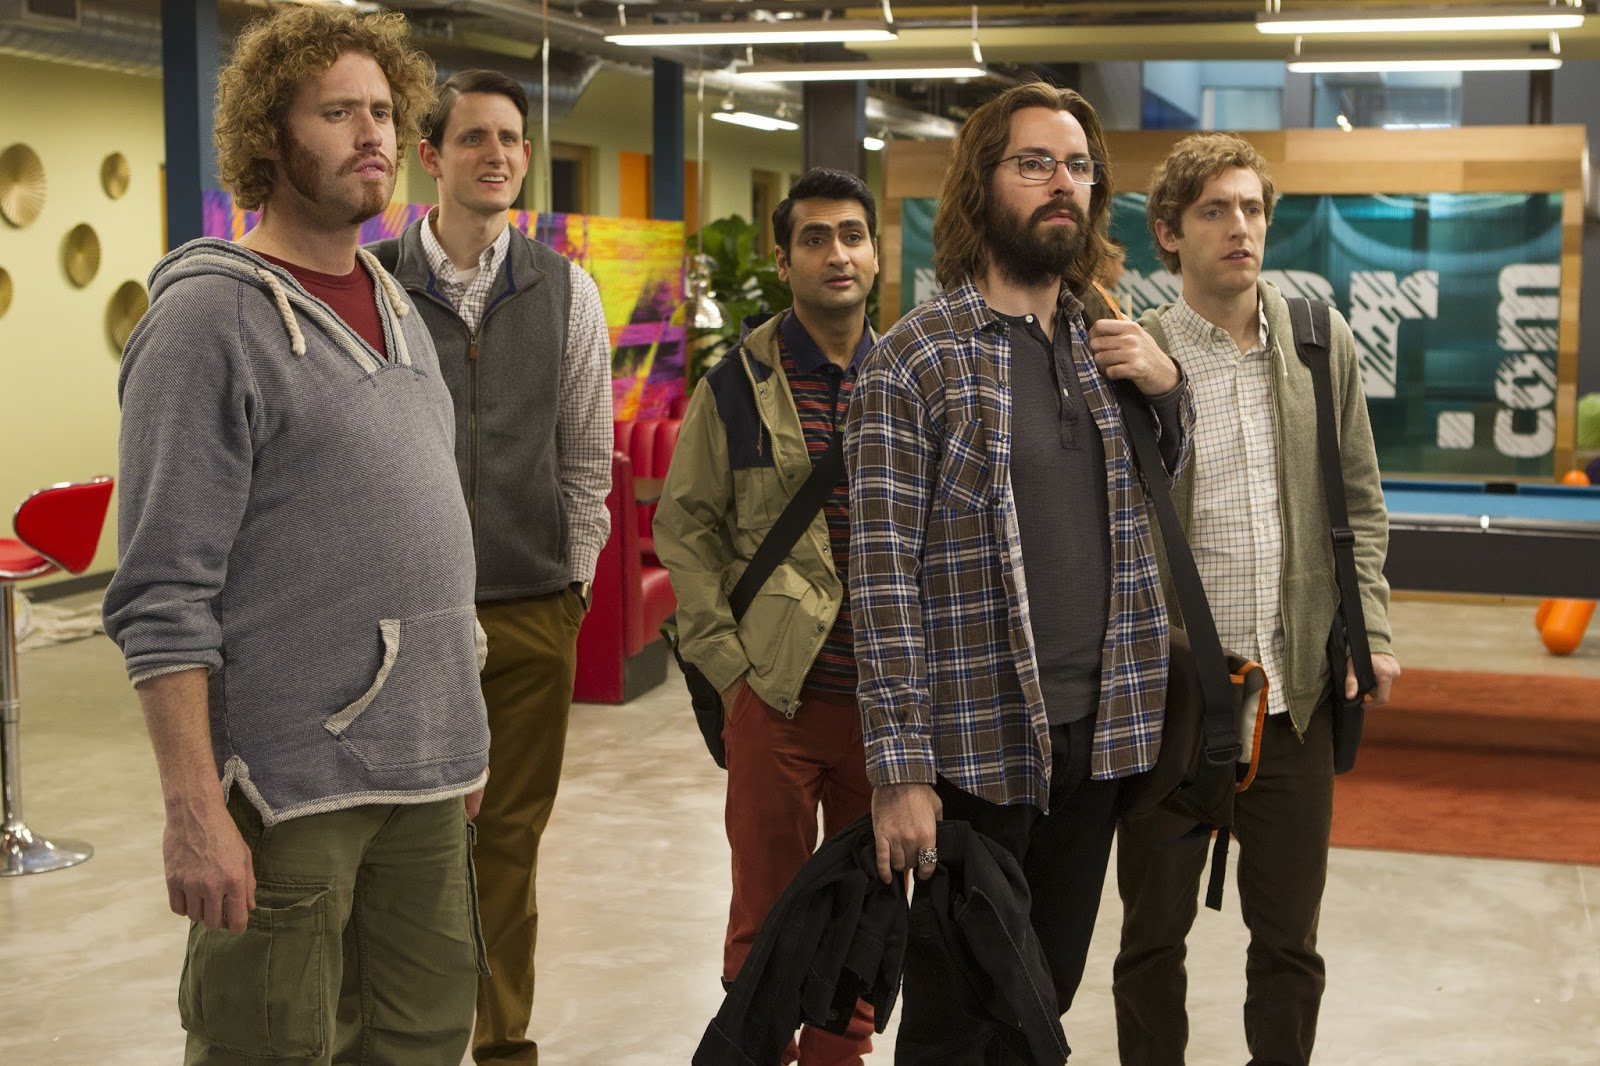 GIVEAWAY: Silicon Valley Season 3 on Digital HD